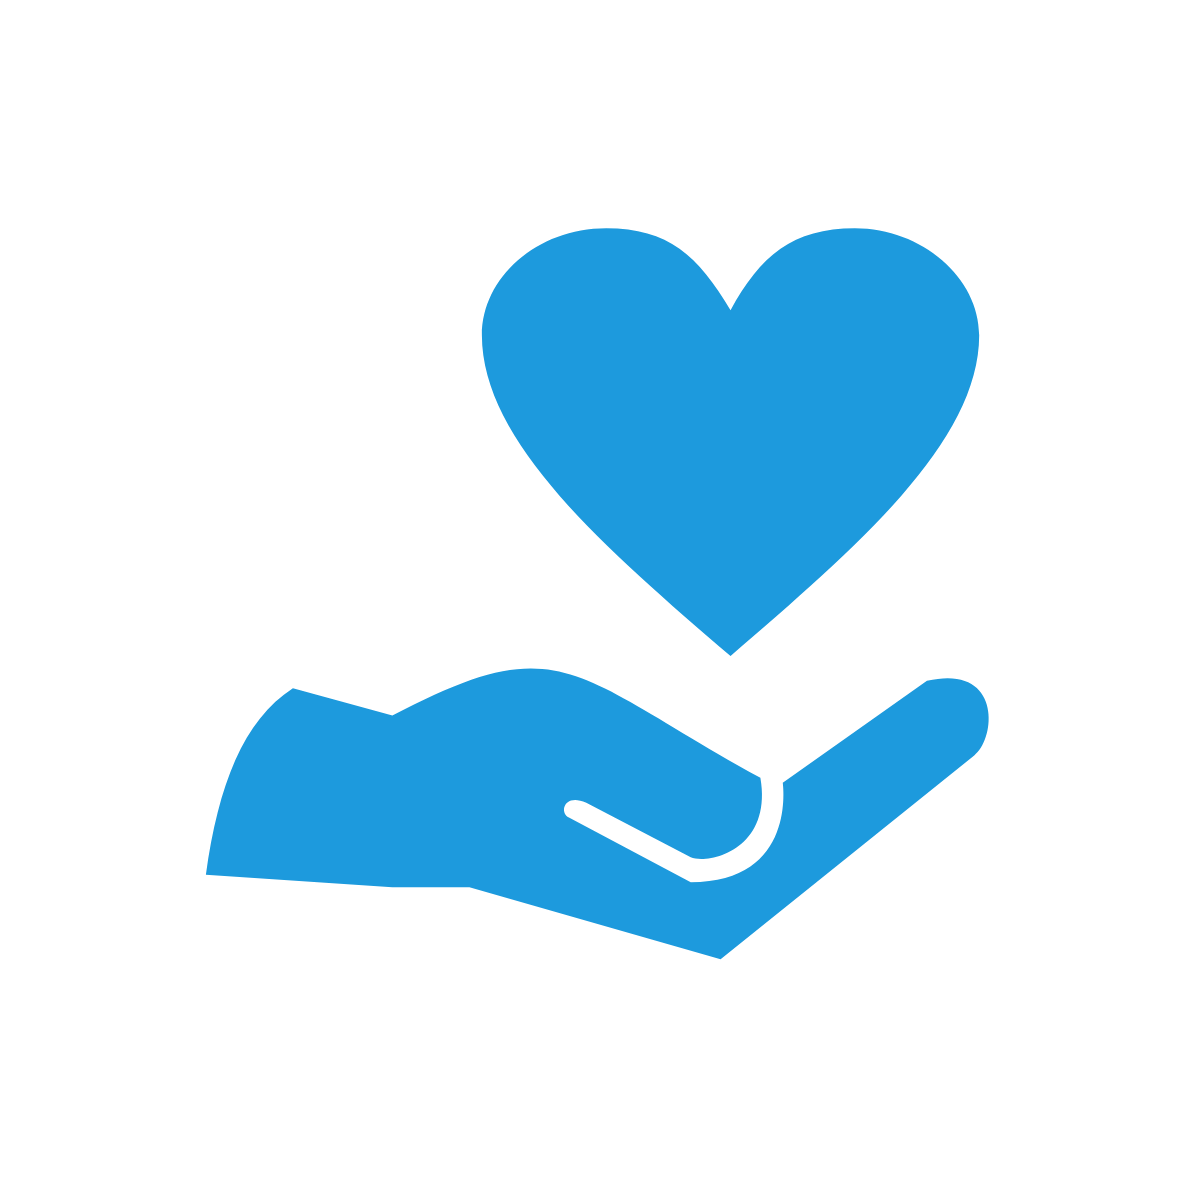 Icon of hand holding out heart